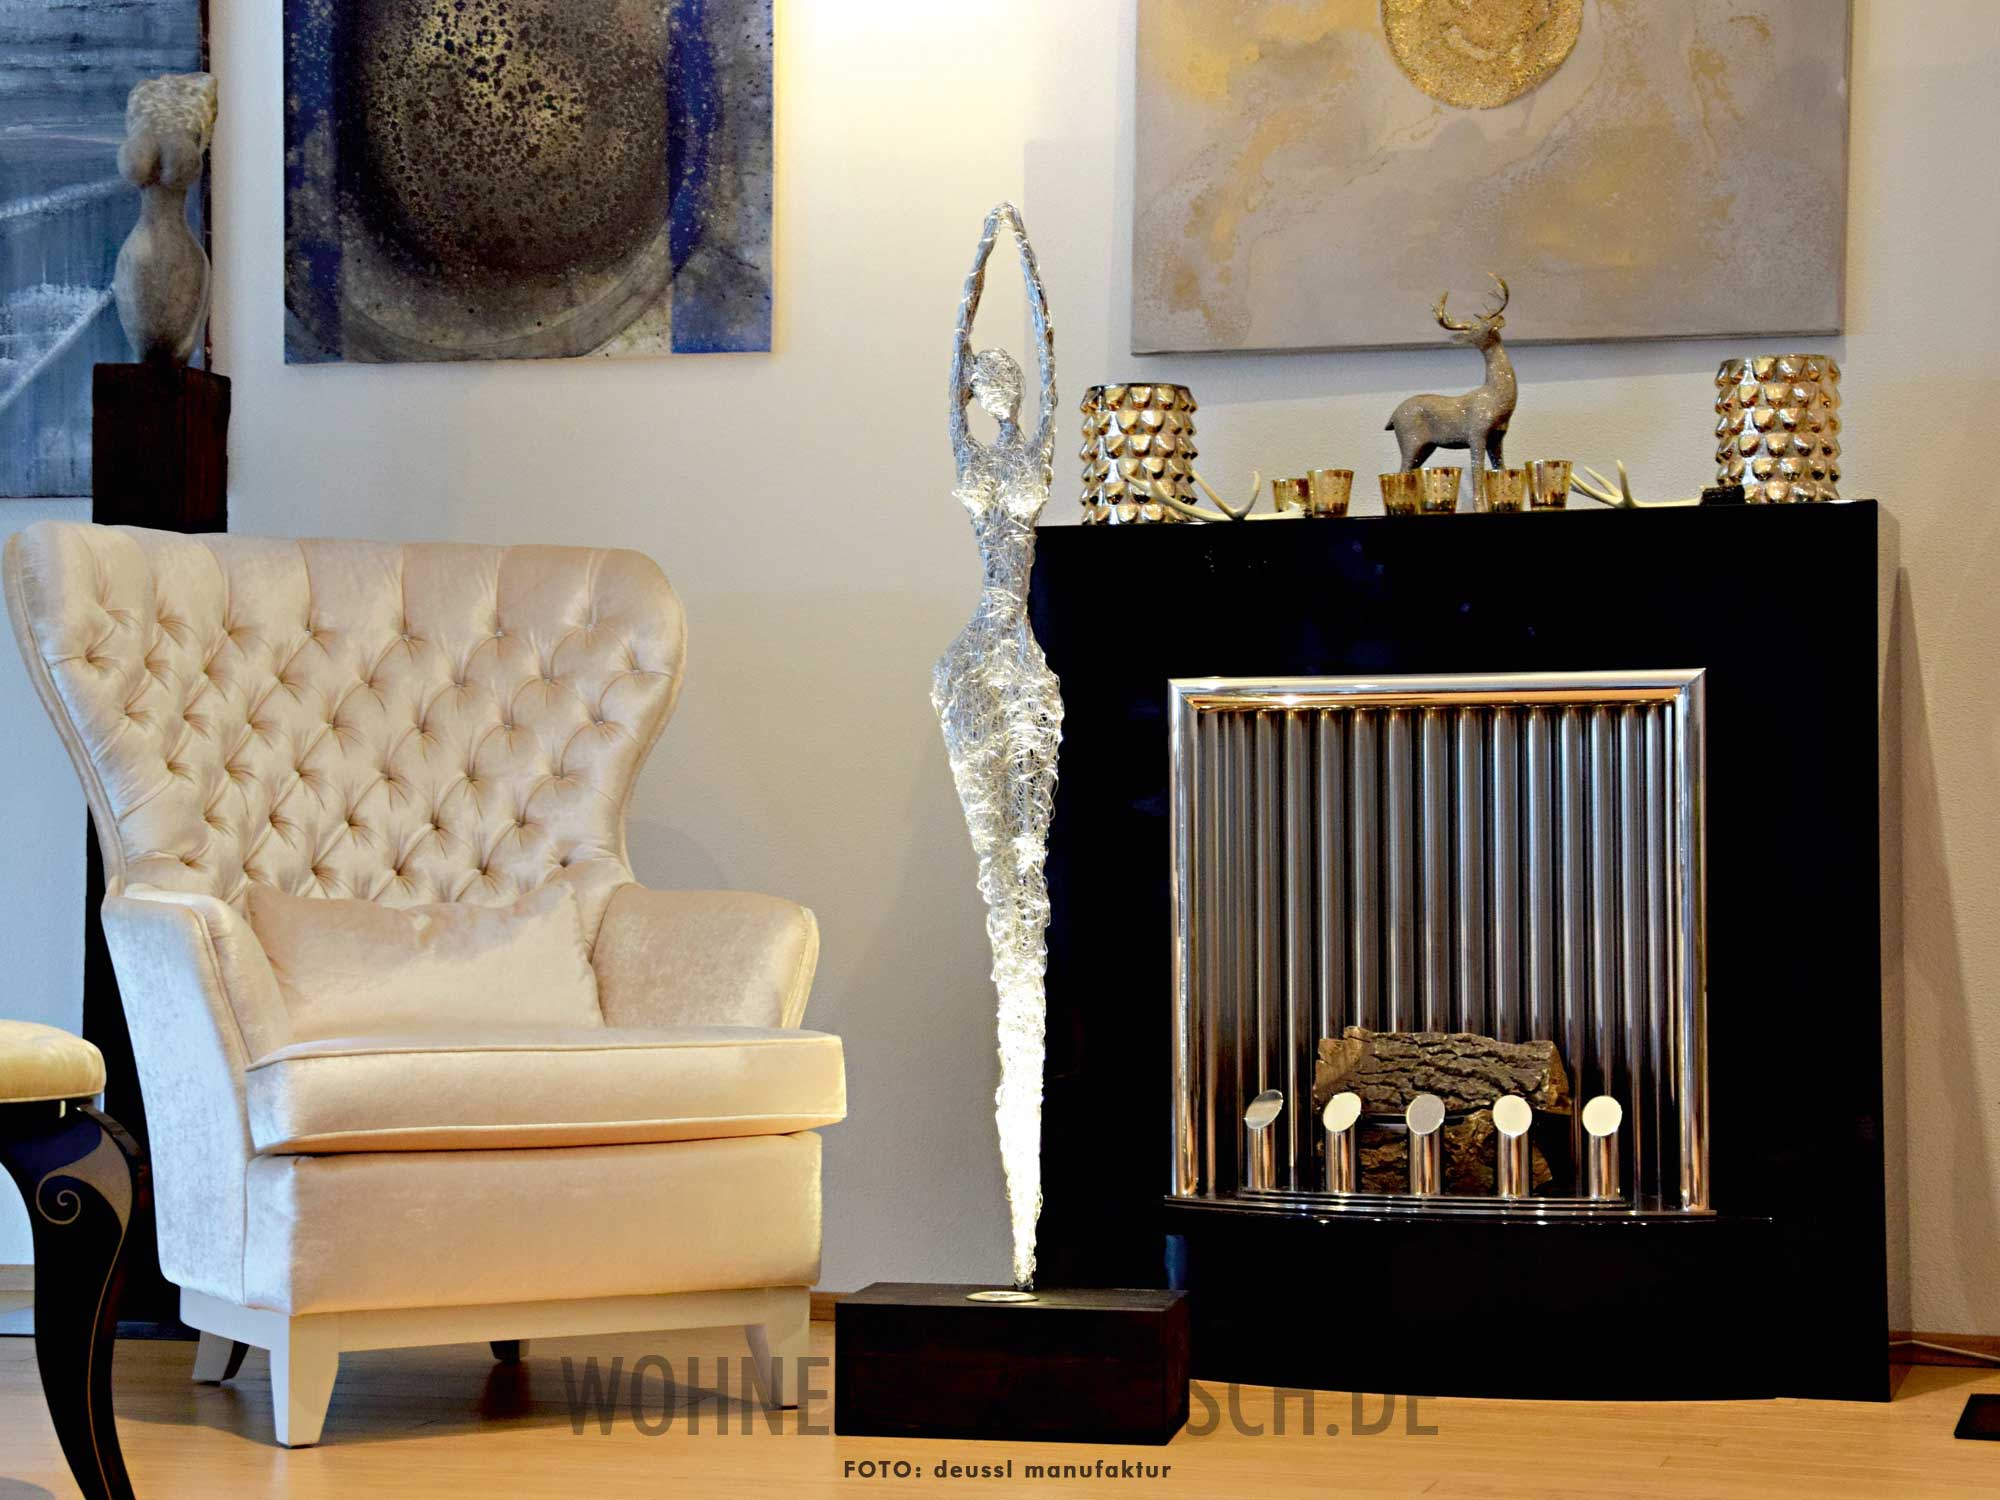 kunstlicht skulpturale eleganz klassisch wohnen. Black Bedroom Furniture Sets. Home Design Ideas